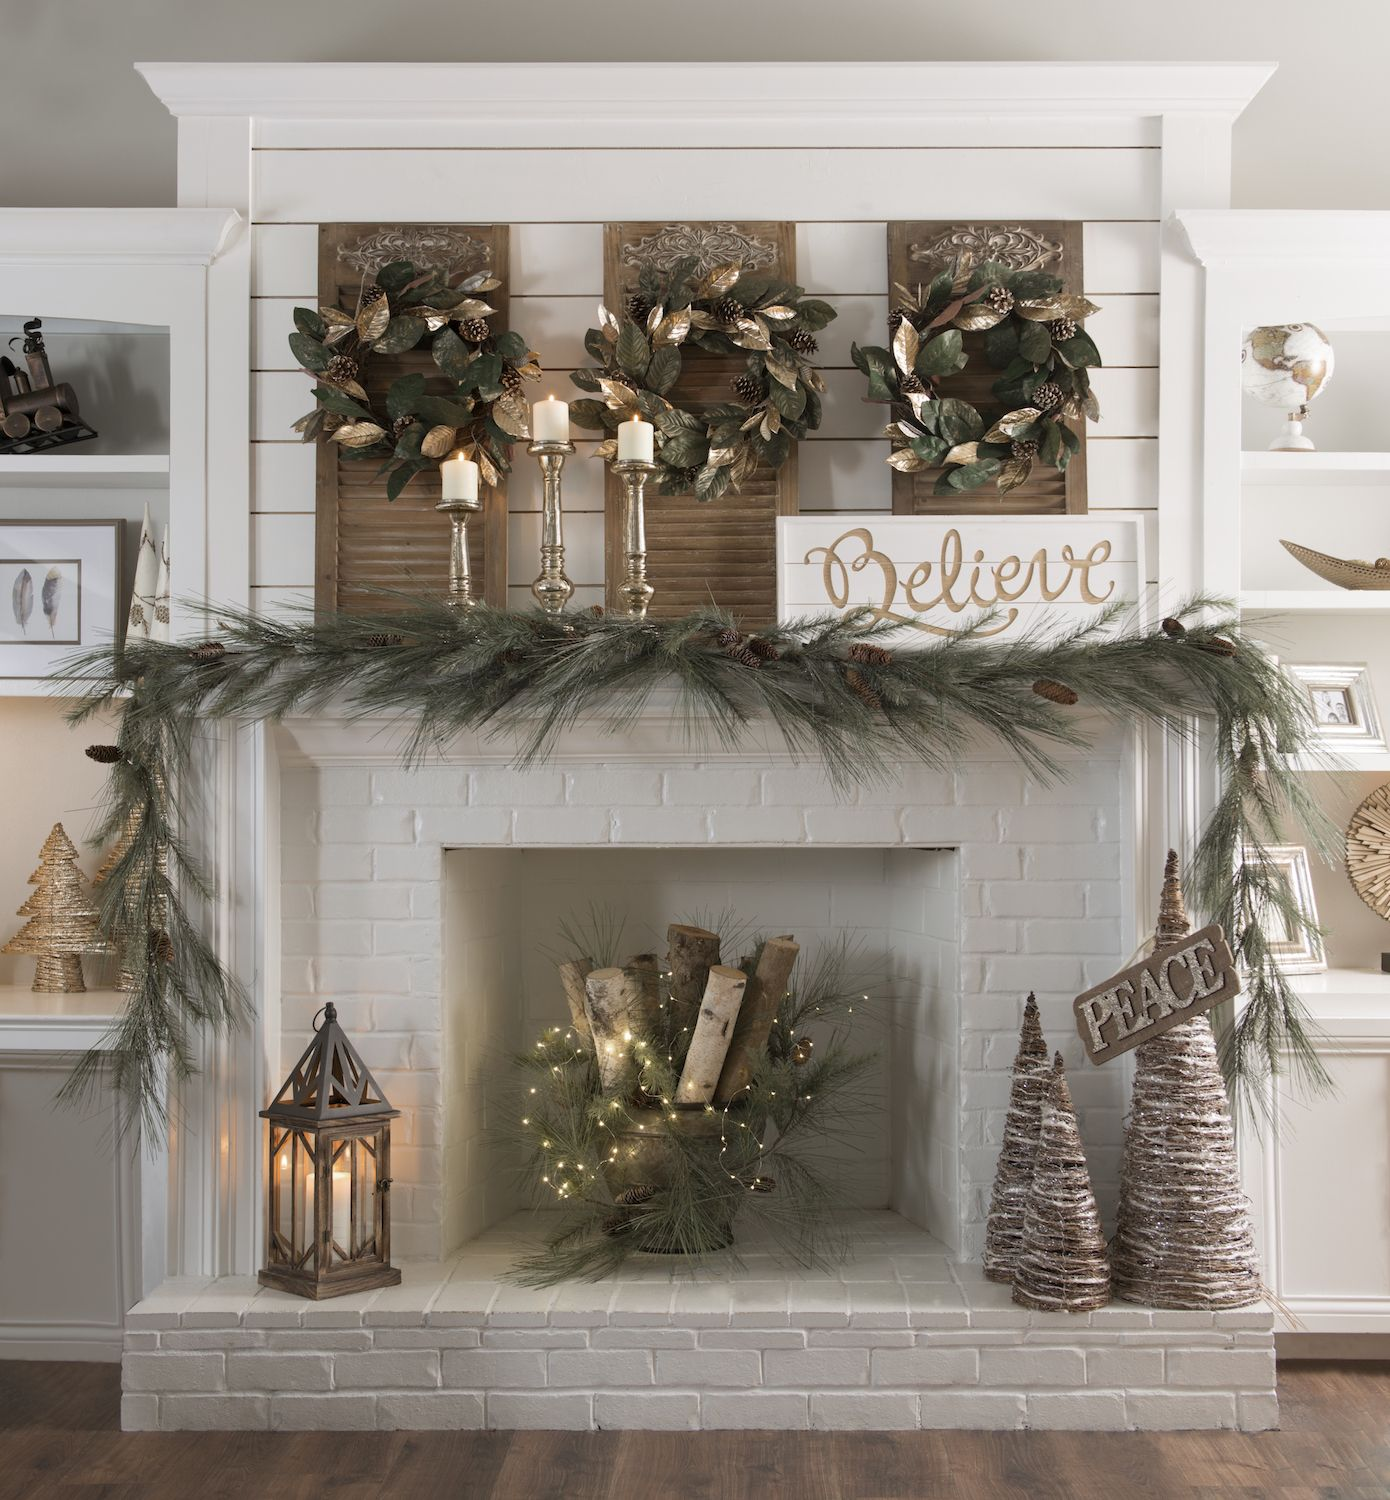 31 Best Decorating Ideas Images On Pinterest: 25+ Unique Kirklands Christmas Ideas On Pinterest